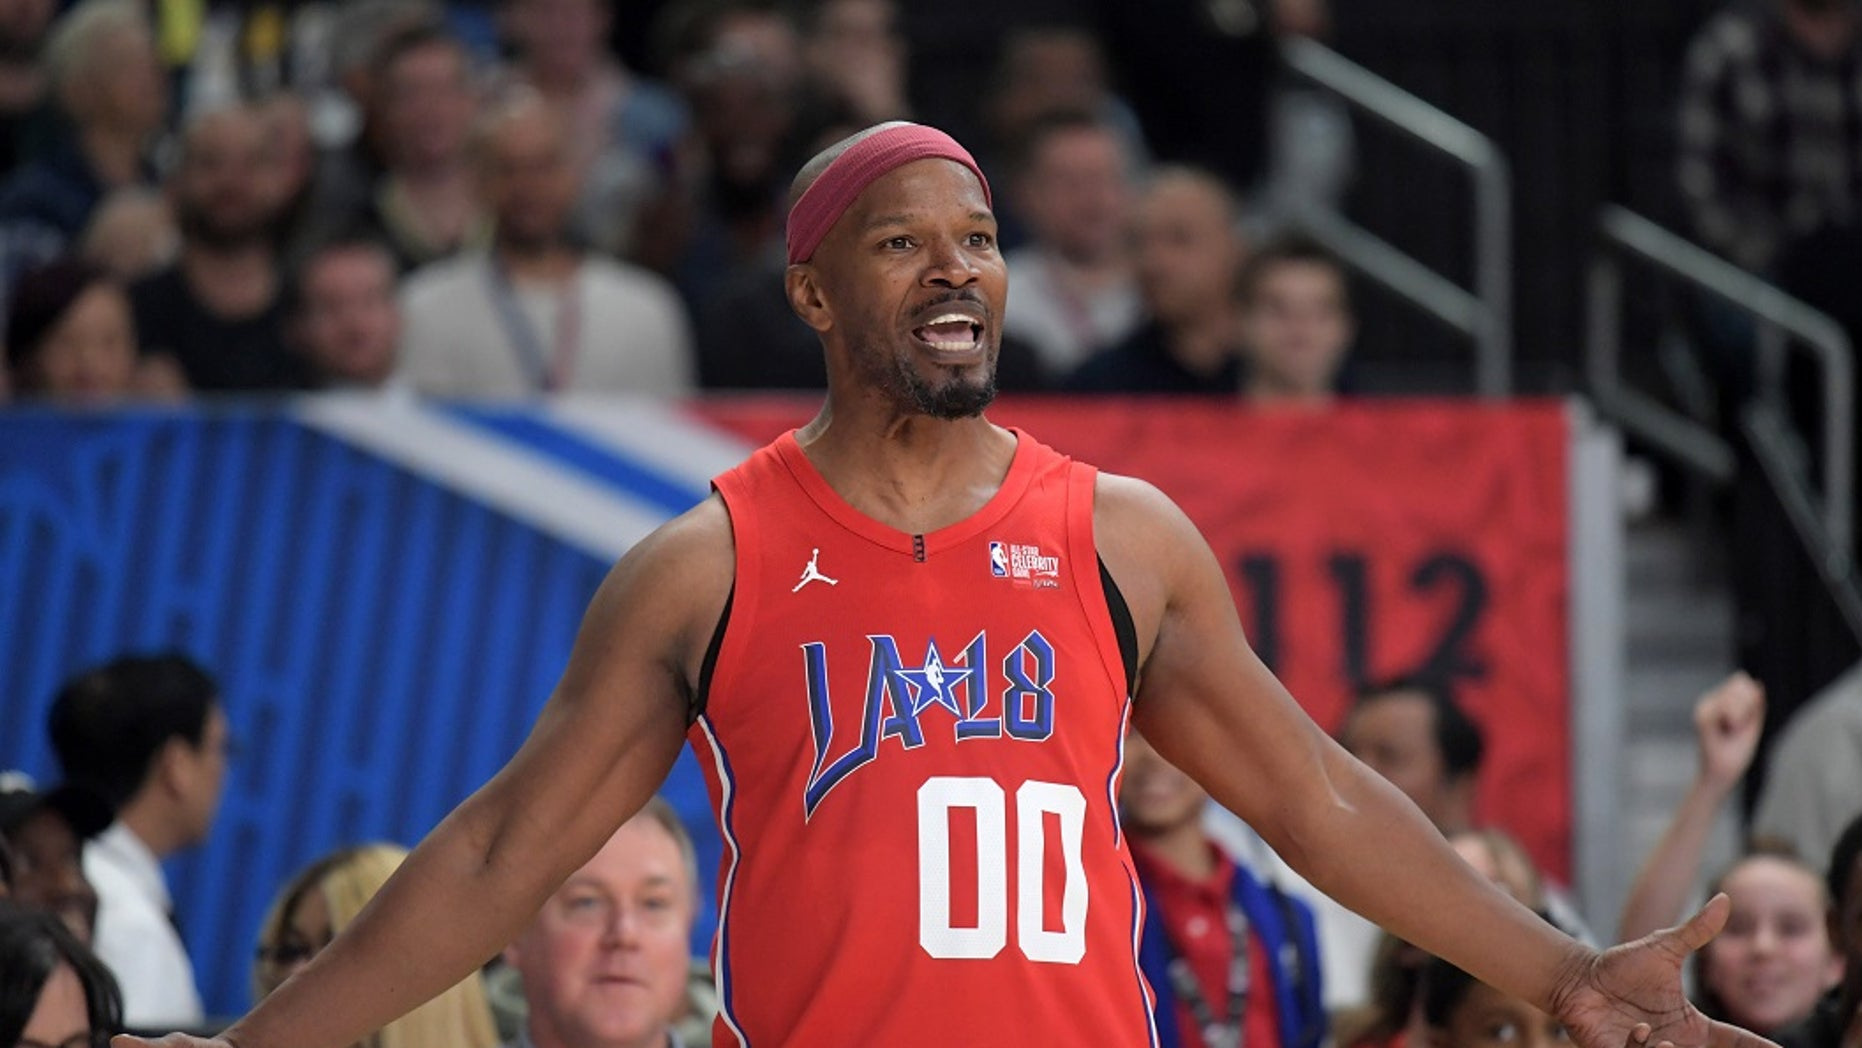 Jamie Foxx cut an interview short with ESPN after the host asked him about his relationship with Katie Holmes.